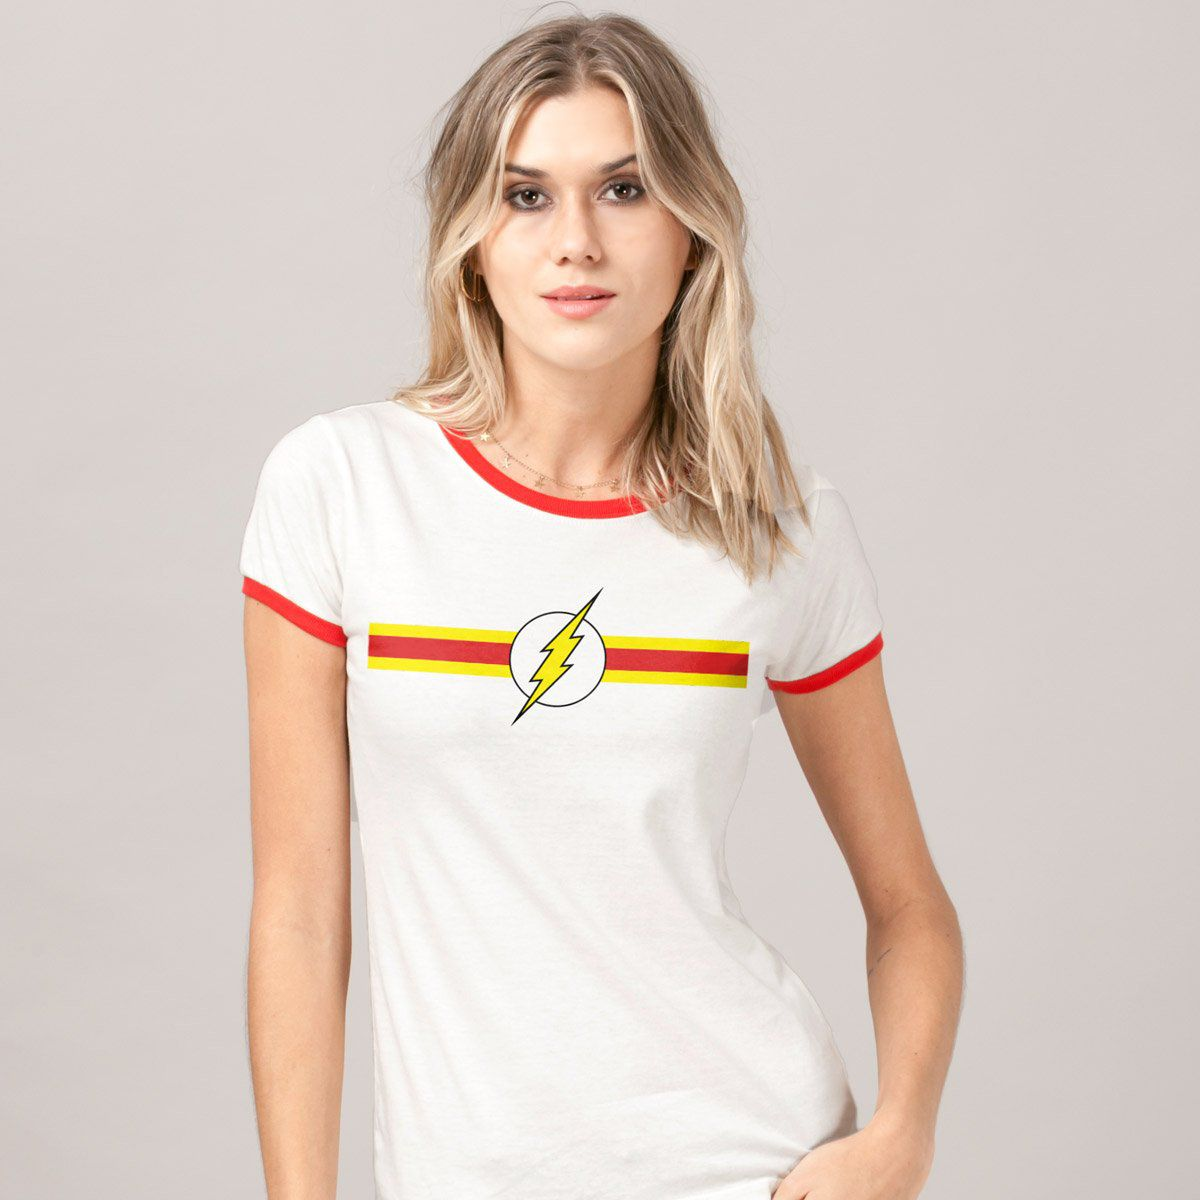 a16782916e Camiseta Ringer Feminina The Flash Stripes